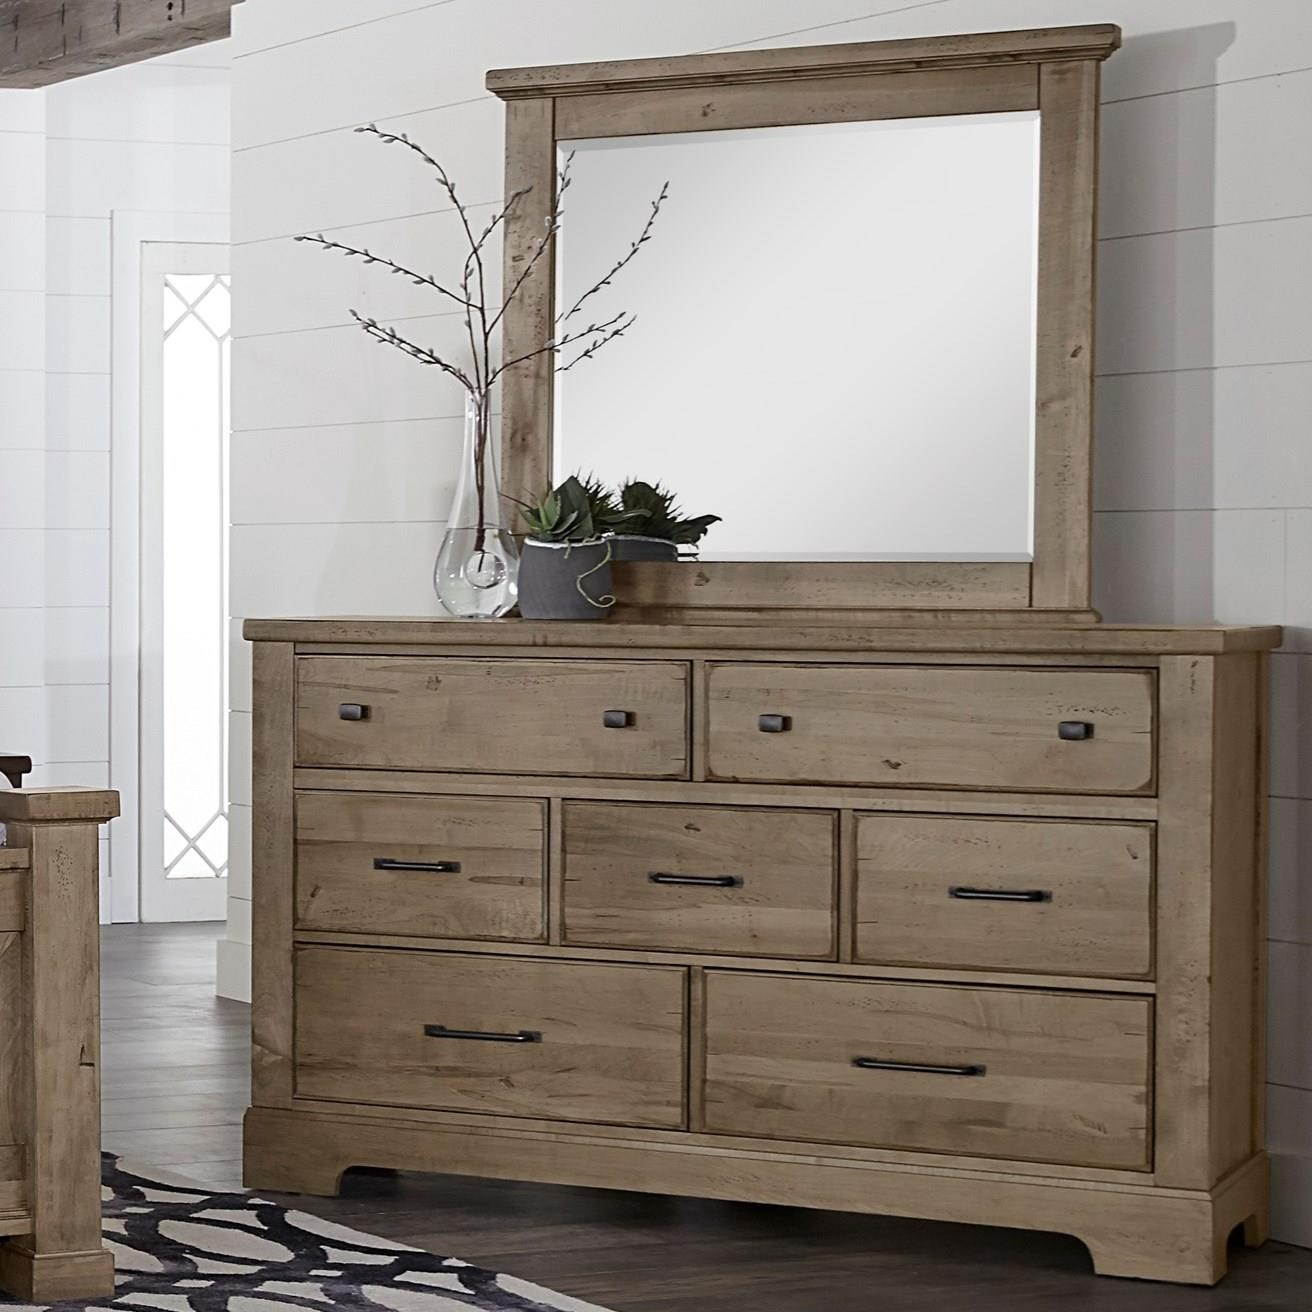 Cool Rustic 7 Drawer Dresser and Mirror by Artisan & Post at Northeast Factory Direct